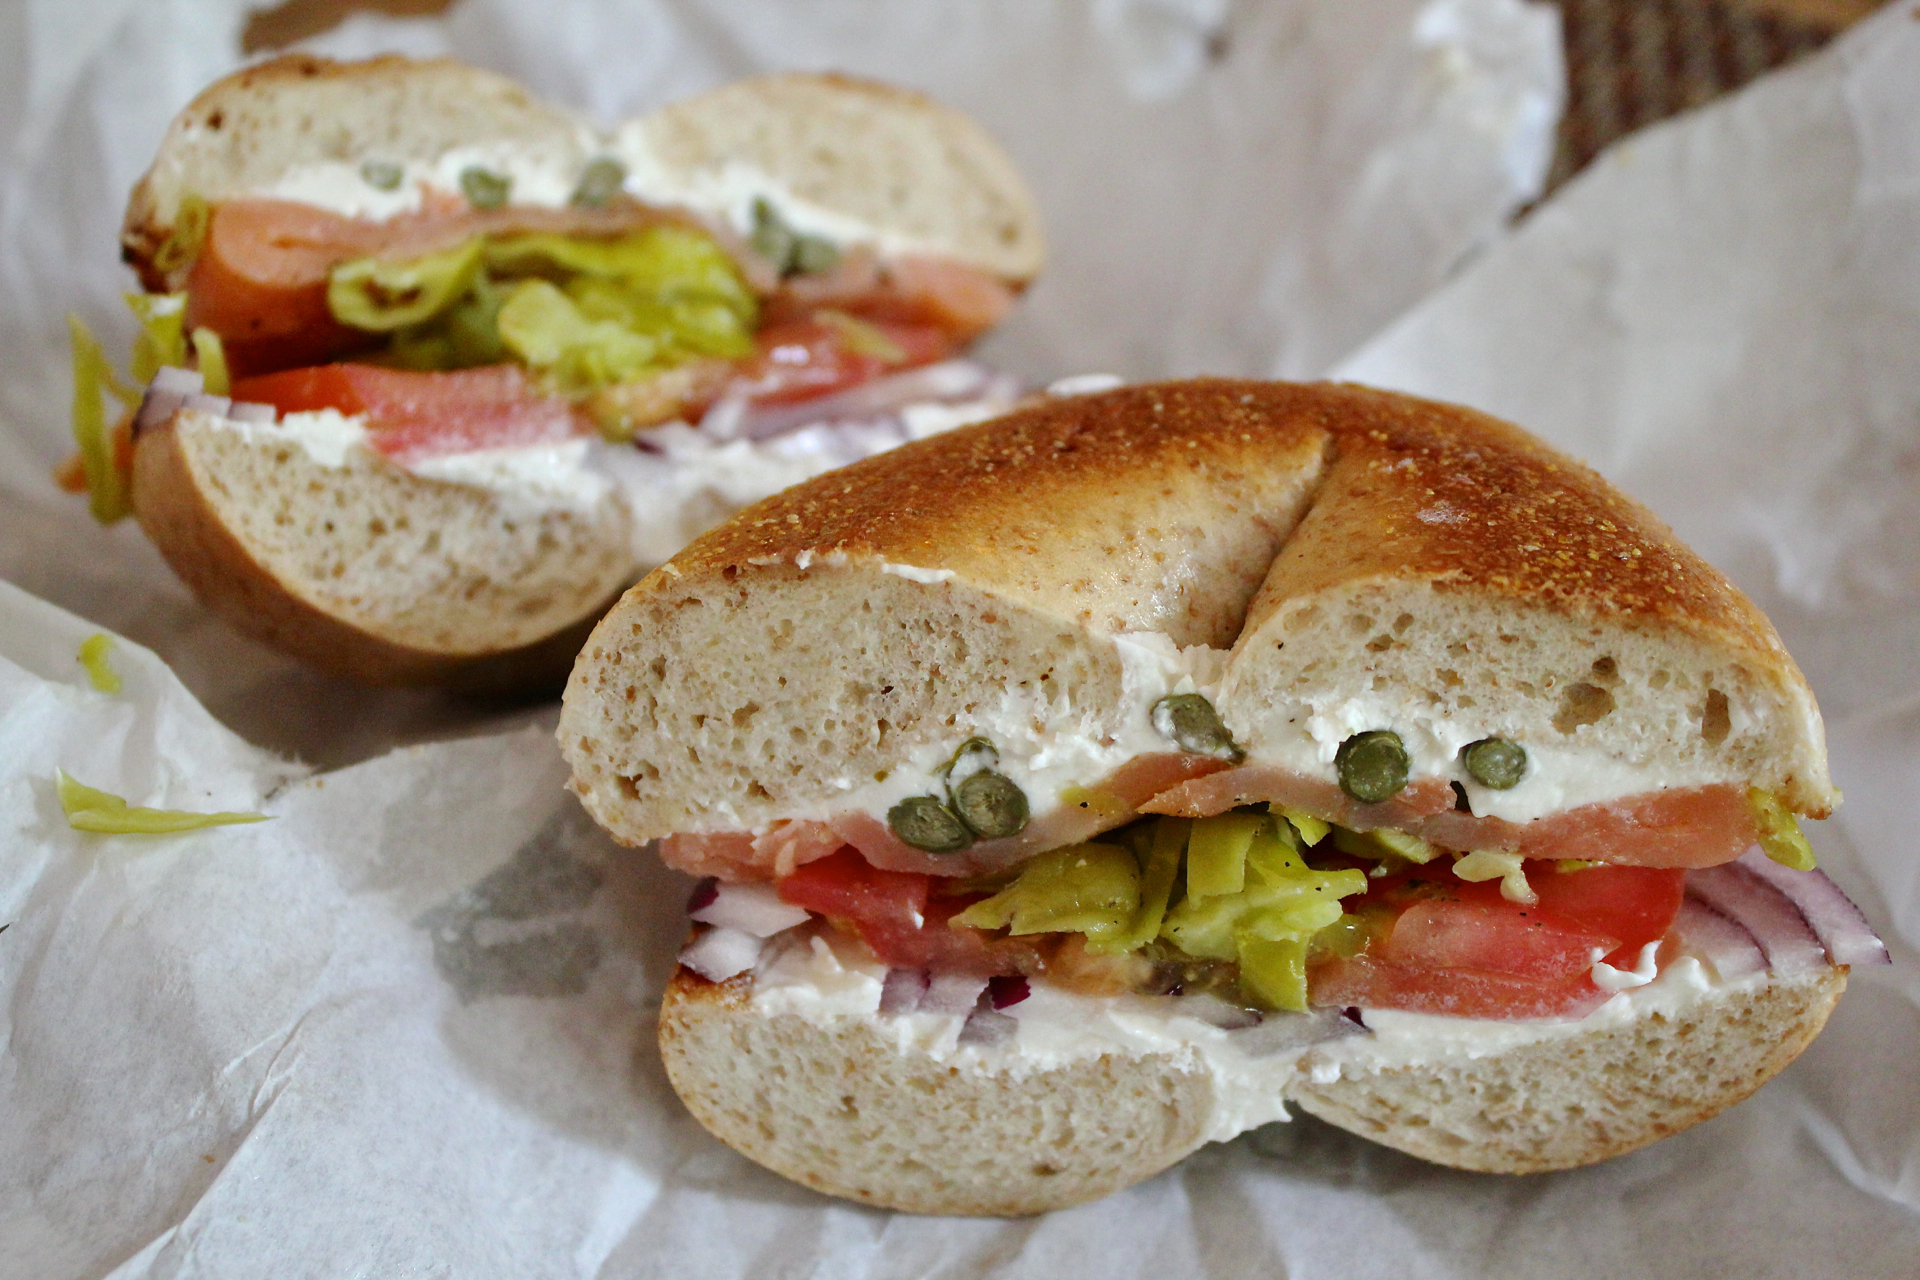 A peppered lox bagel sandwich on a whole wheat bagel from Regal Bagel.